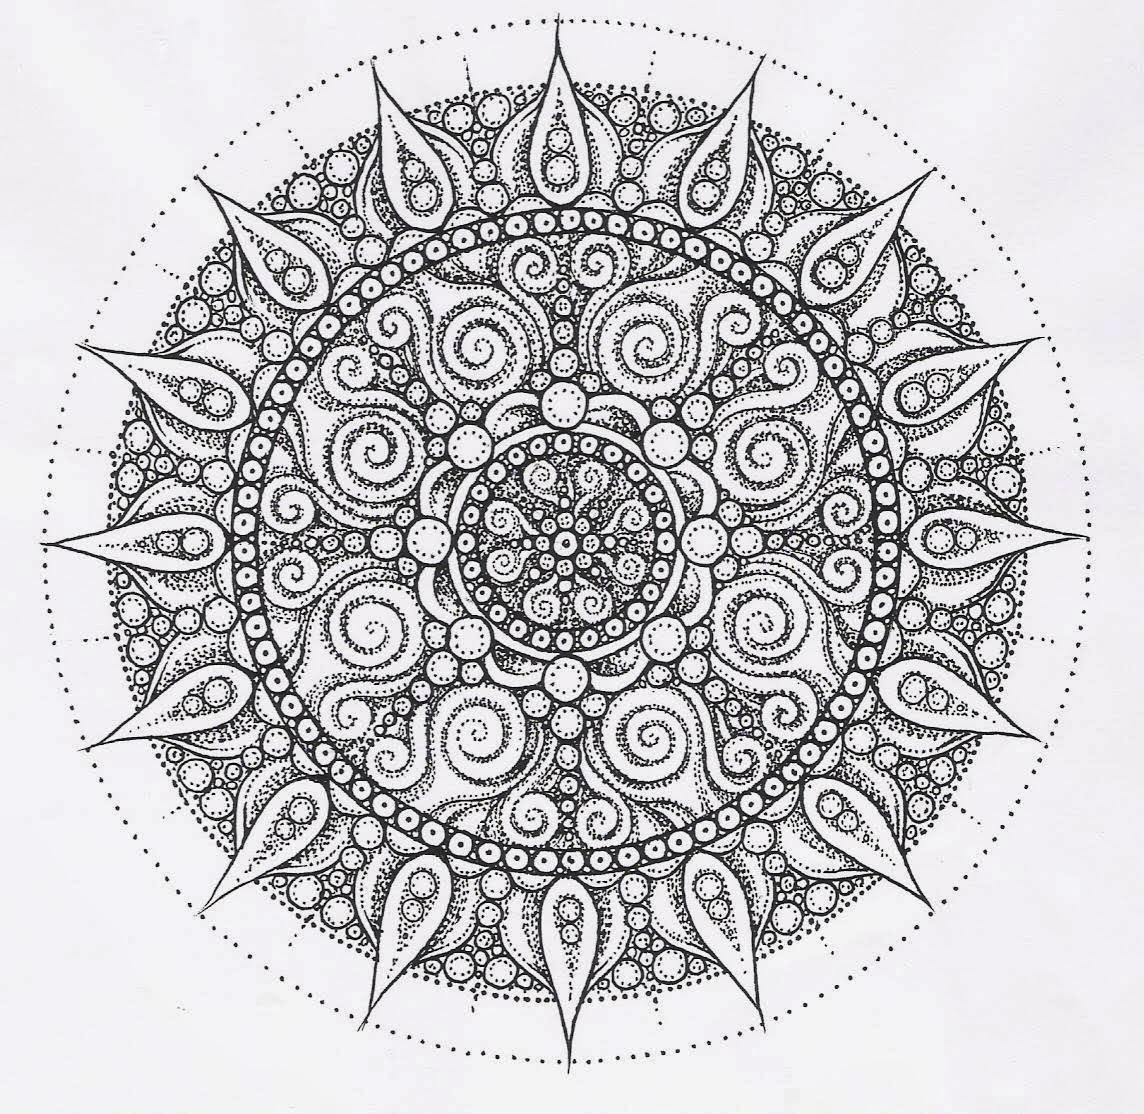 Printable coloring pages | coloring pages mandalas printable